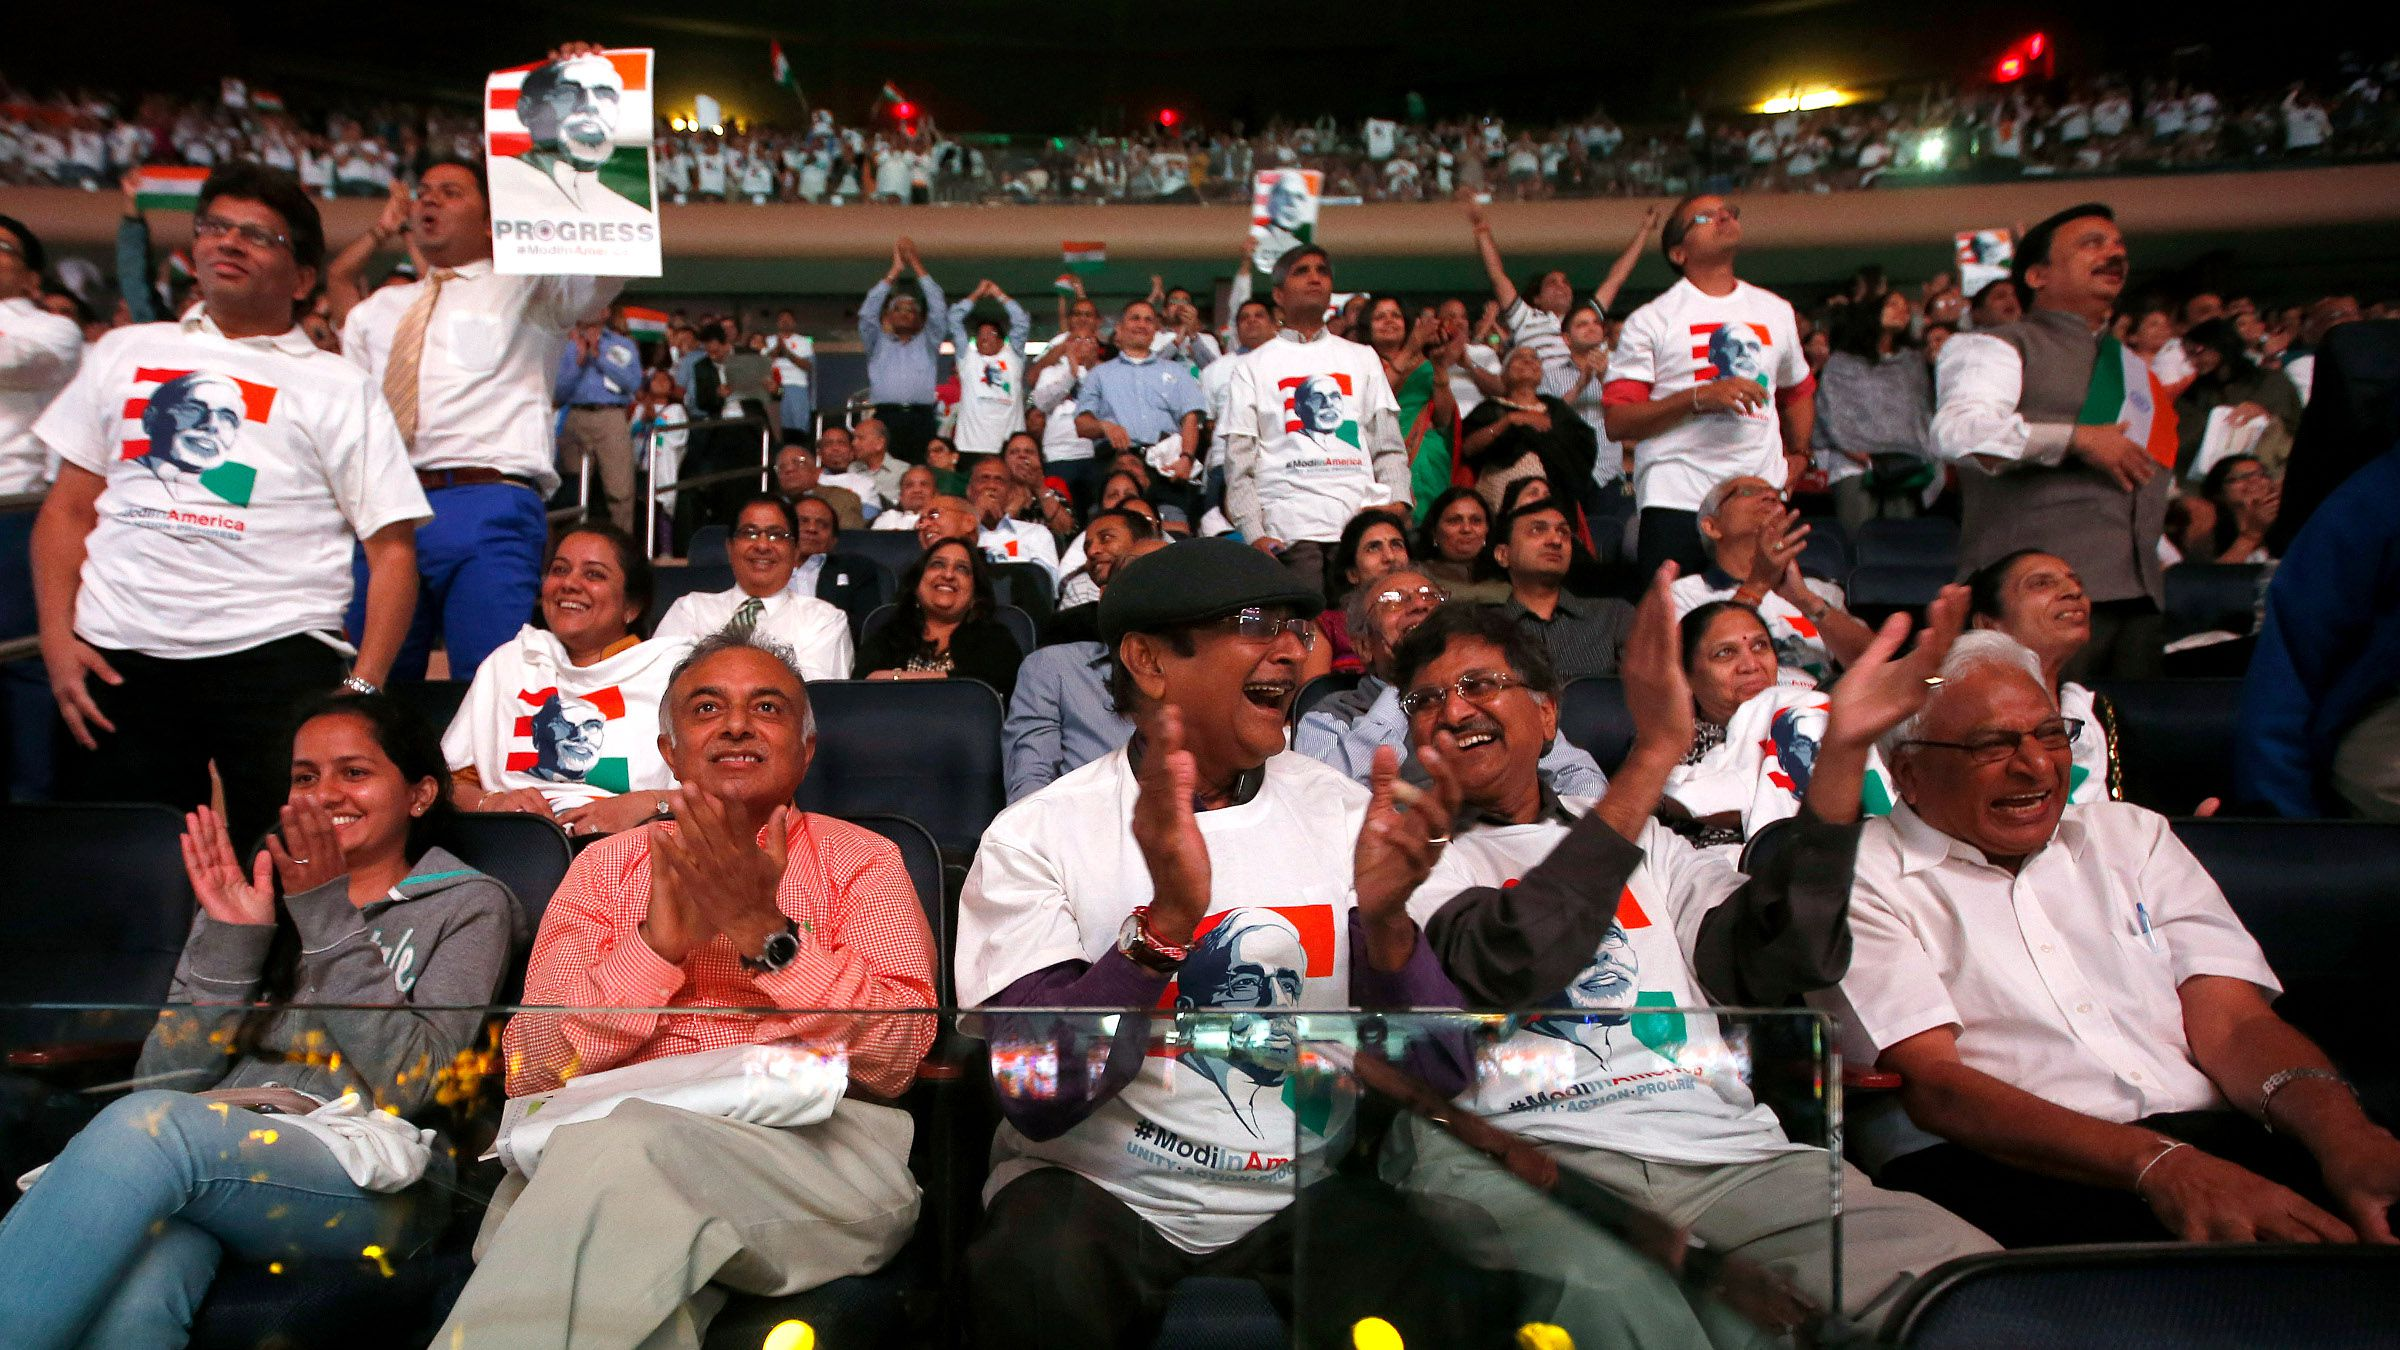 Supporters cheer as India's Prime Minister Narendra Modi gives a speech during a reception by the Indian community in honor of his visit to the United States at Madison Square Garden, Sunday, Sept. 28, 2014, in New York.